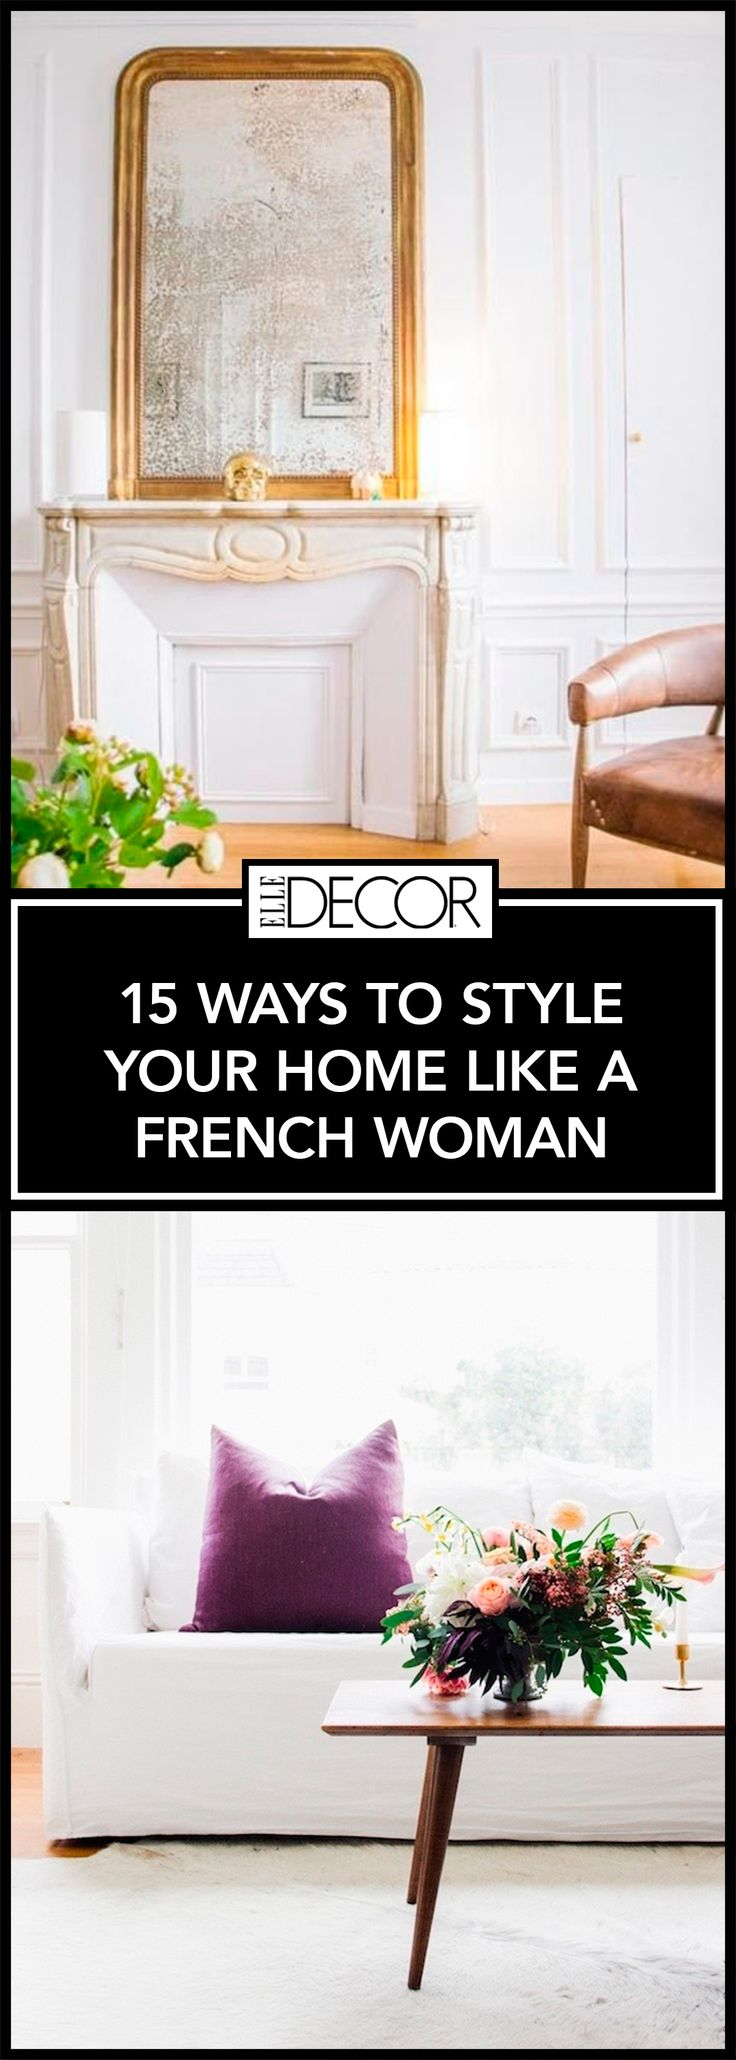 Genuis at home pinterest design trends new homes and trends - Learn How To Effortlessly Decorate Like A Parisian Woman With These 15 Stylish And Genius Tips